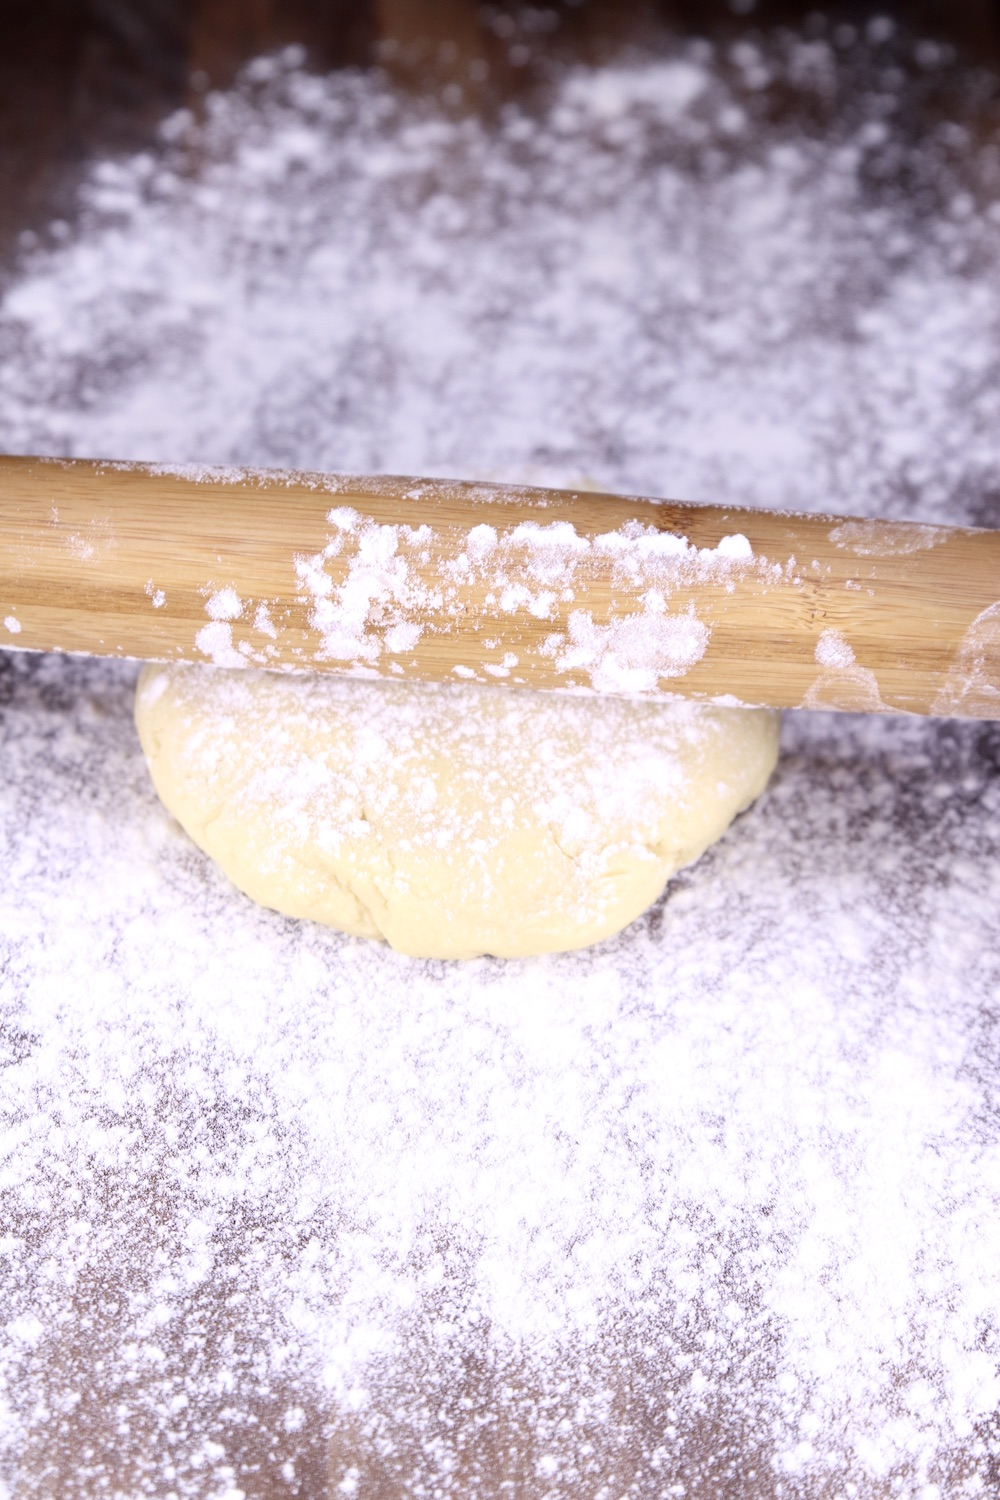 Rolling pin rolling sugar cookie dough on a well floured board